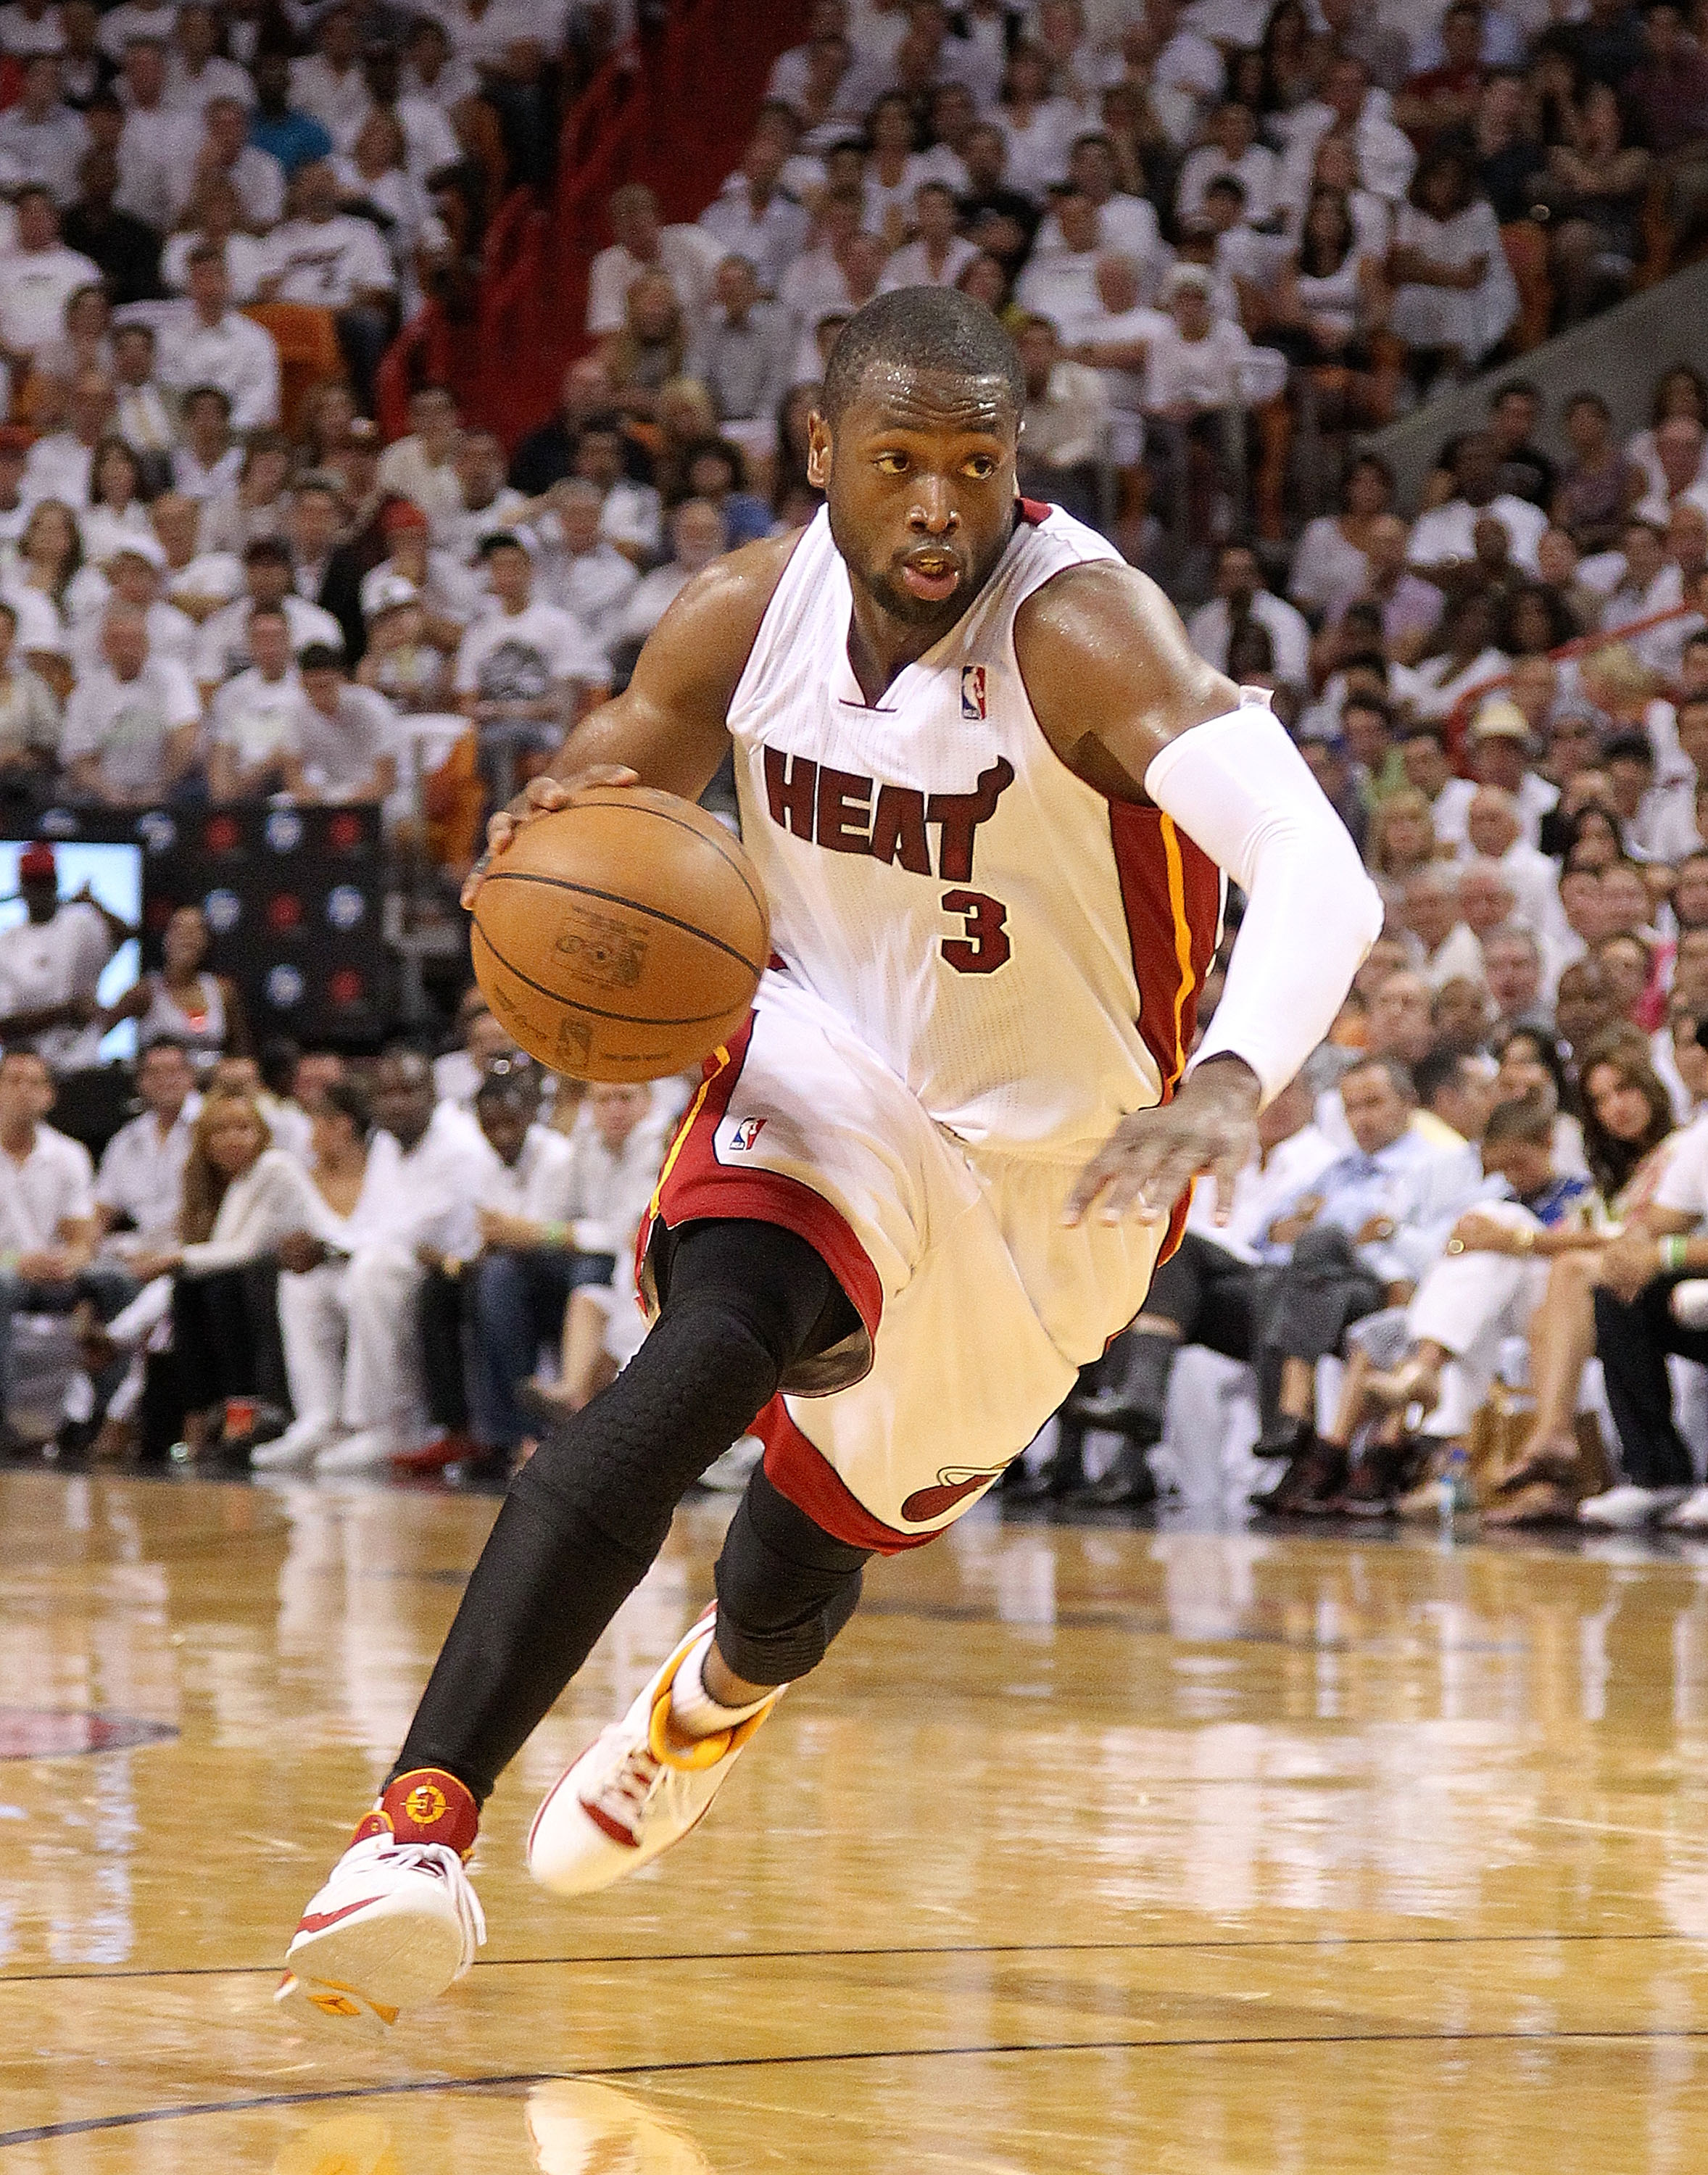 MIAMI, FL - APRIL 27:  Dwyane Wade #3 of the Miami Heat drives to the lane during game five of the Eastern Conference Quarterfinals in the 2011 NBA Playoffs against the Philadelphia 76ers at American Airlines Arena on April 27, 2011 in Miami, Florida. NOT